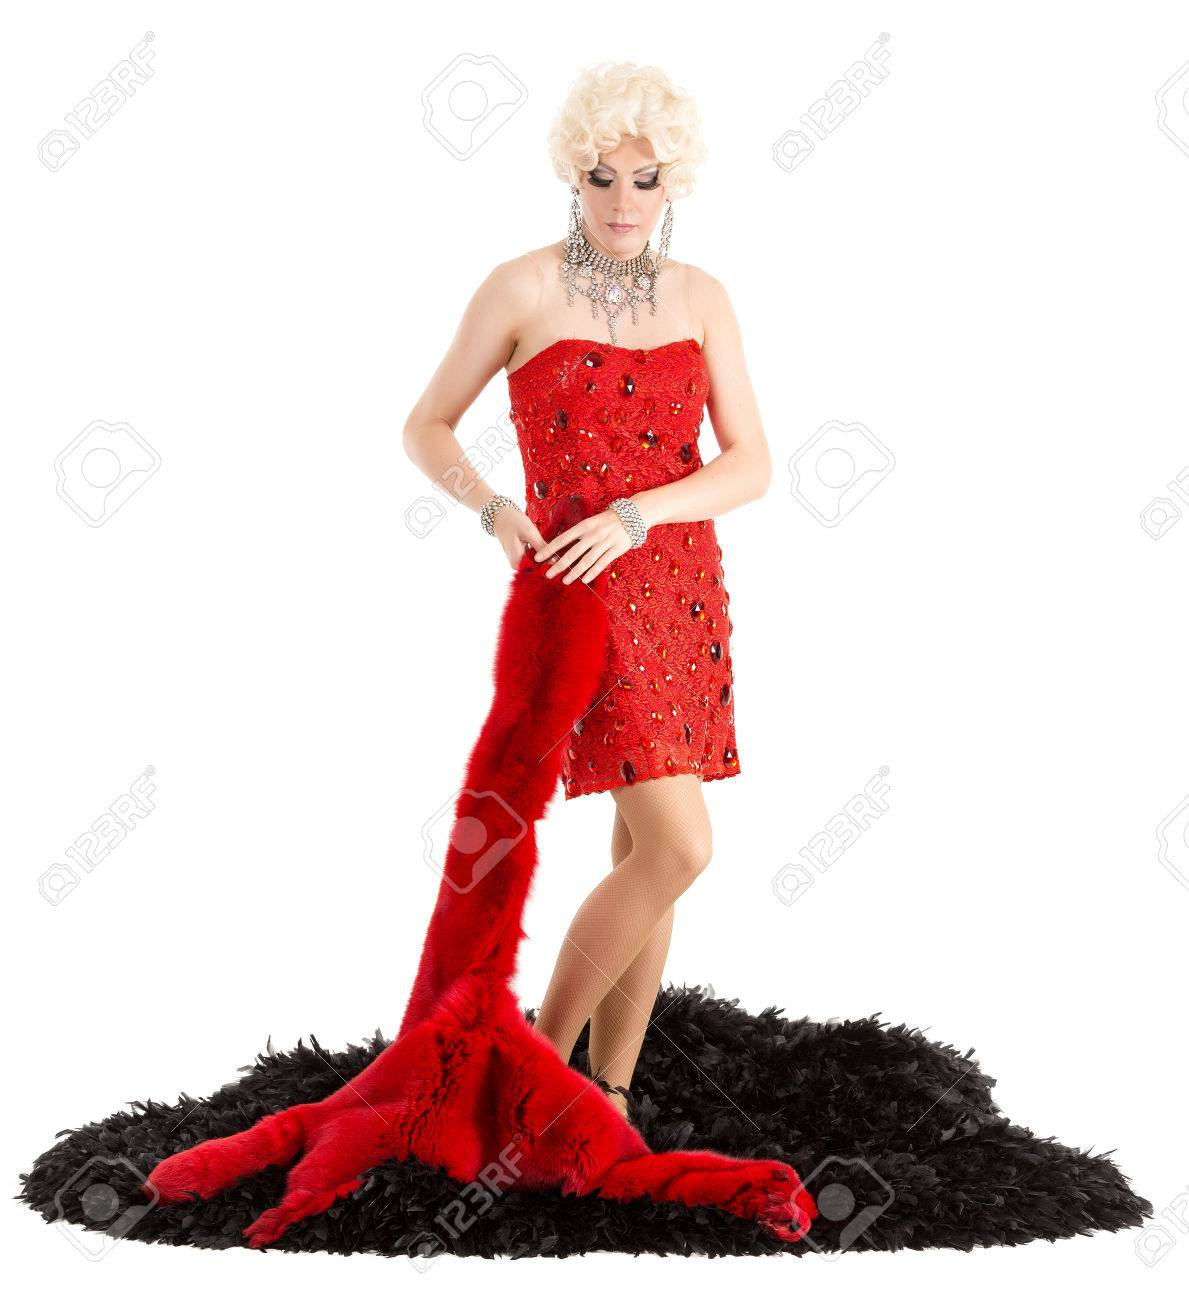 Drag Queen In Red Dress With Fur Performing, On White Background ...